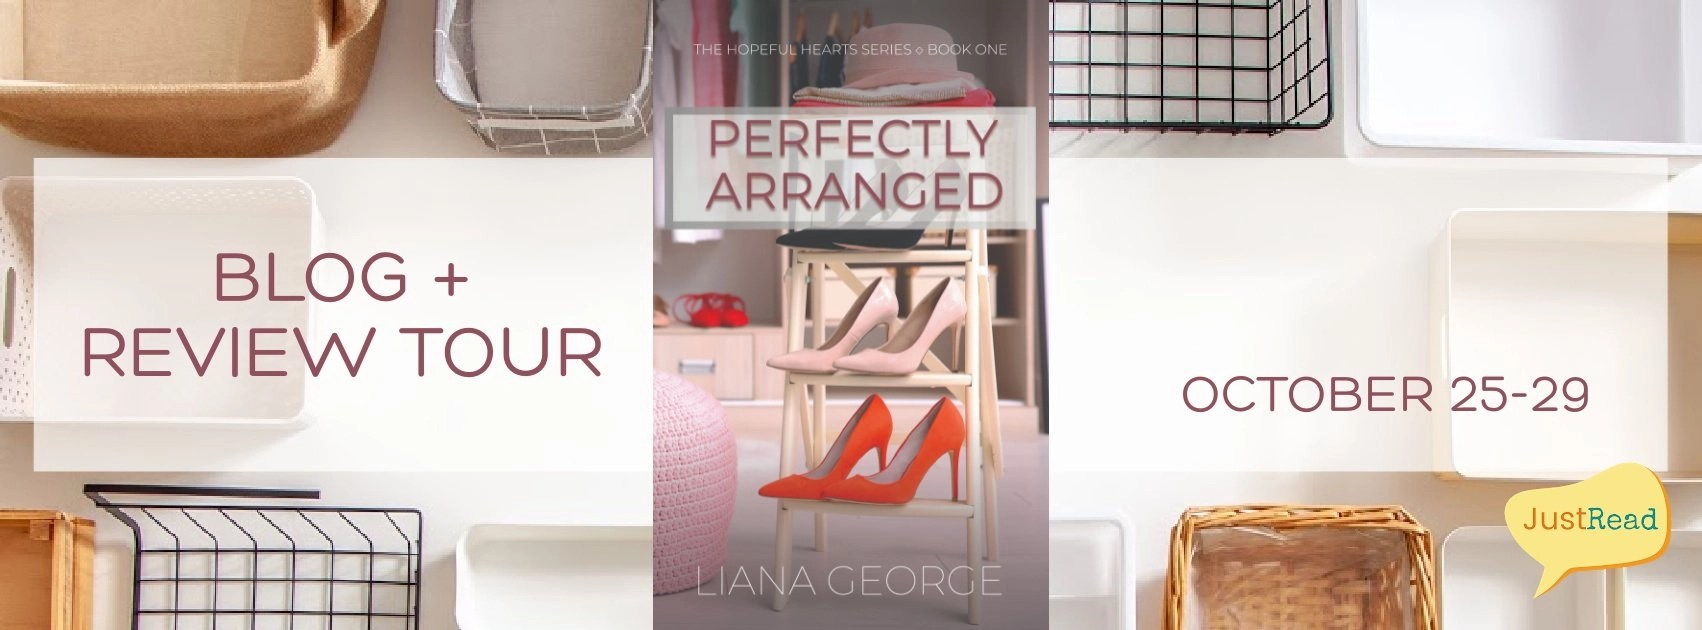 Welcome to the Perfectly Arranged Blog + Review Tour & Giveaway!